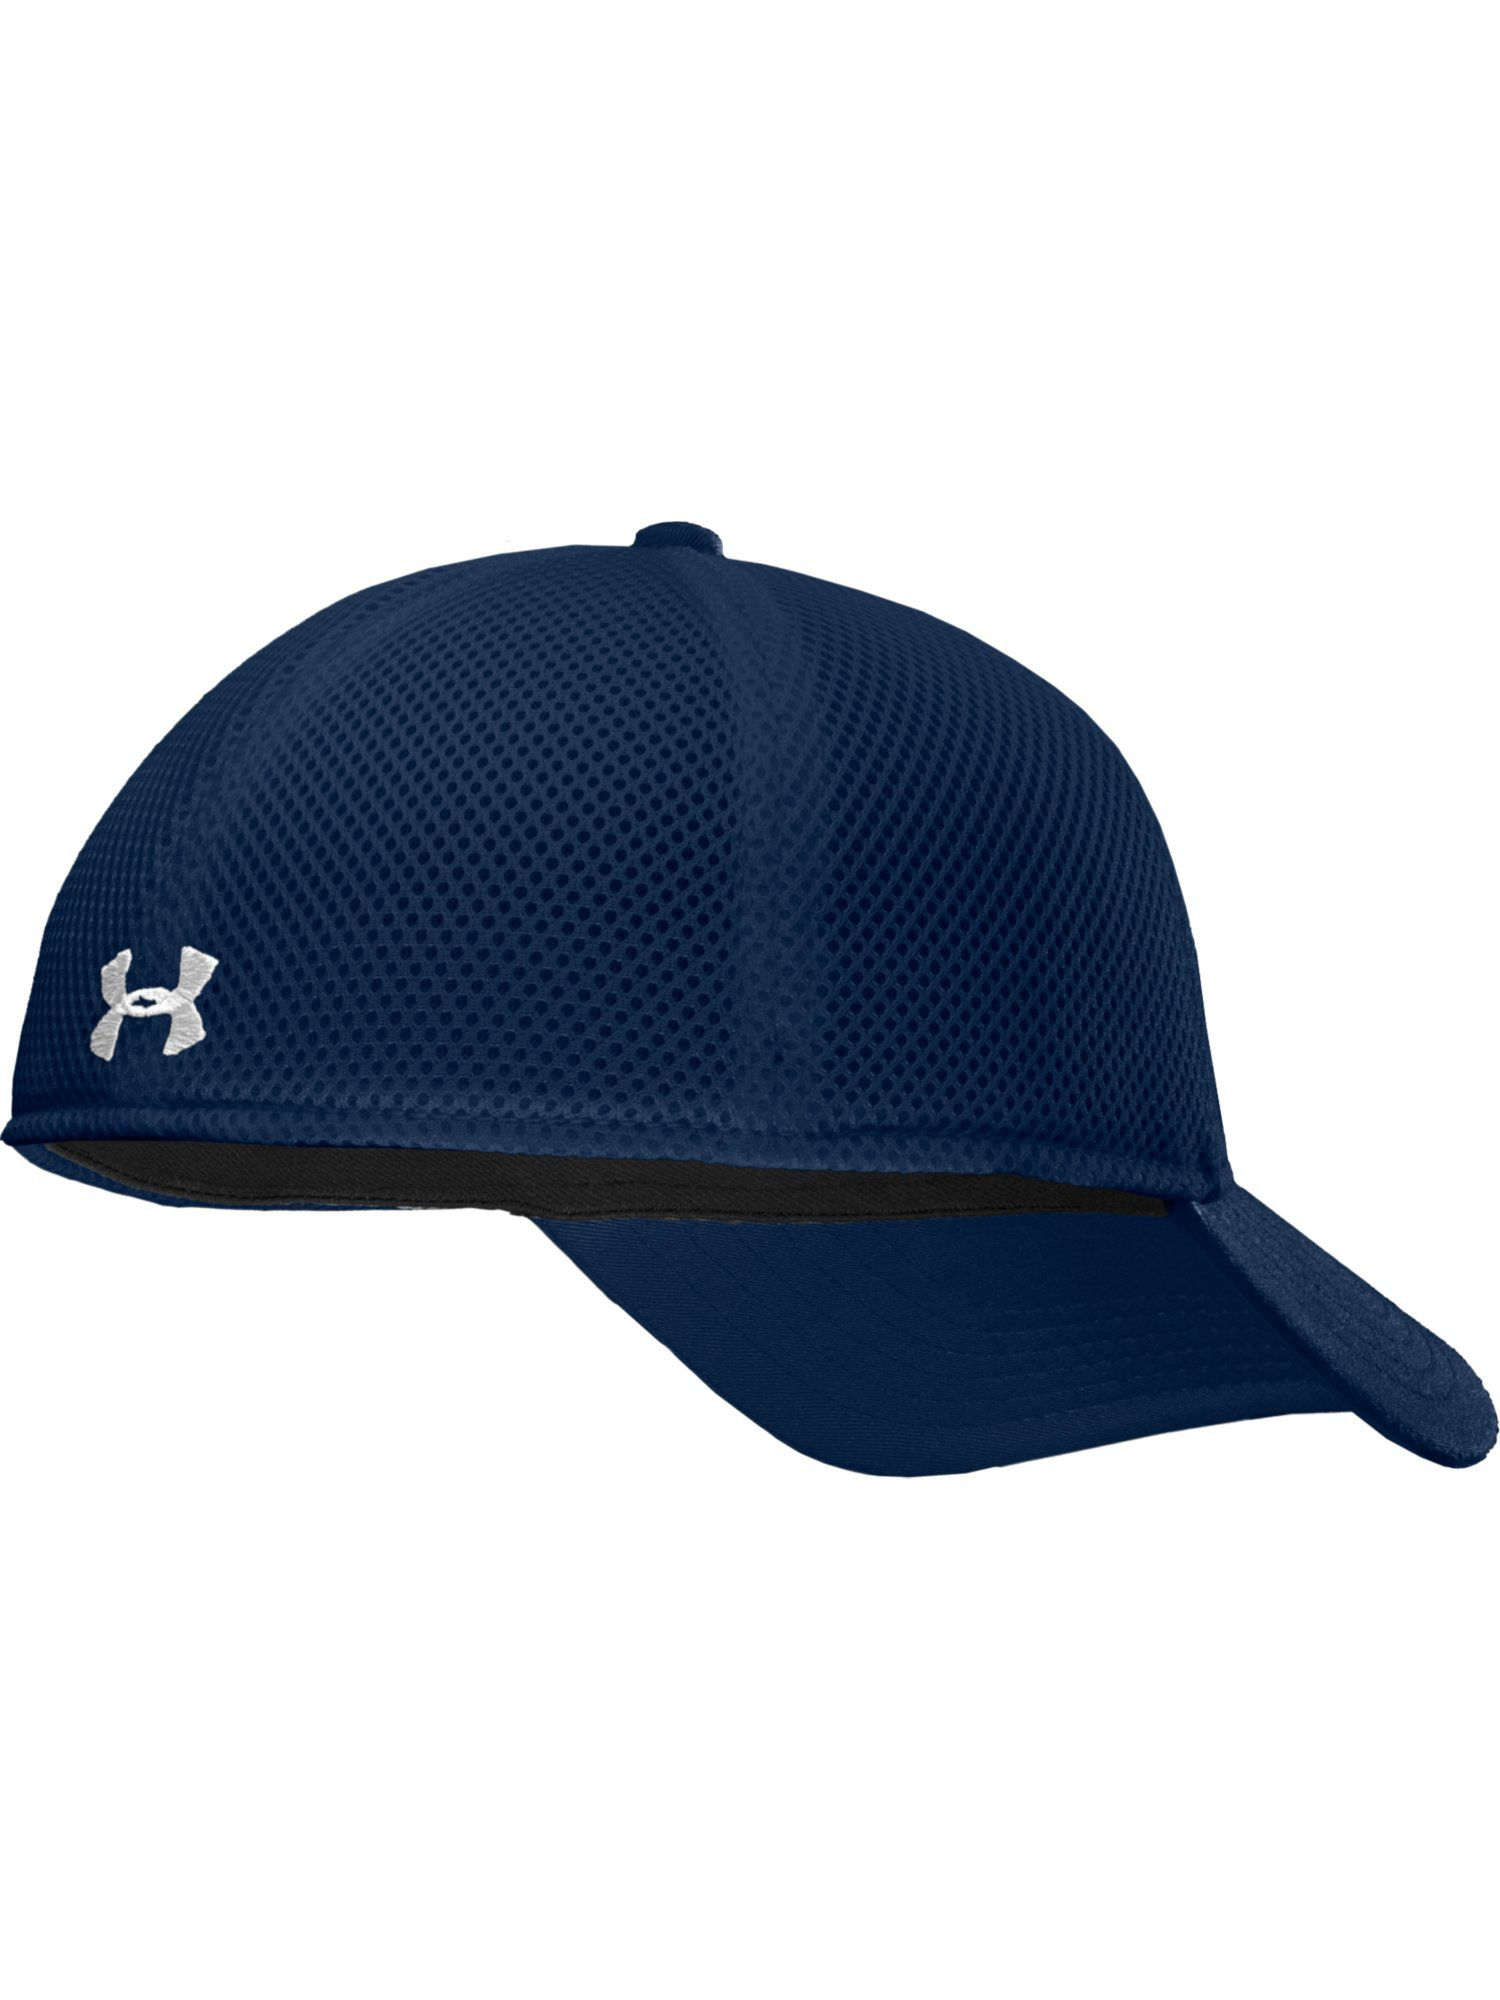 Classic mesh stretch fit cap